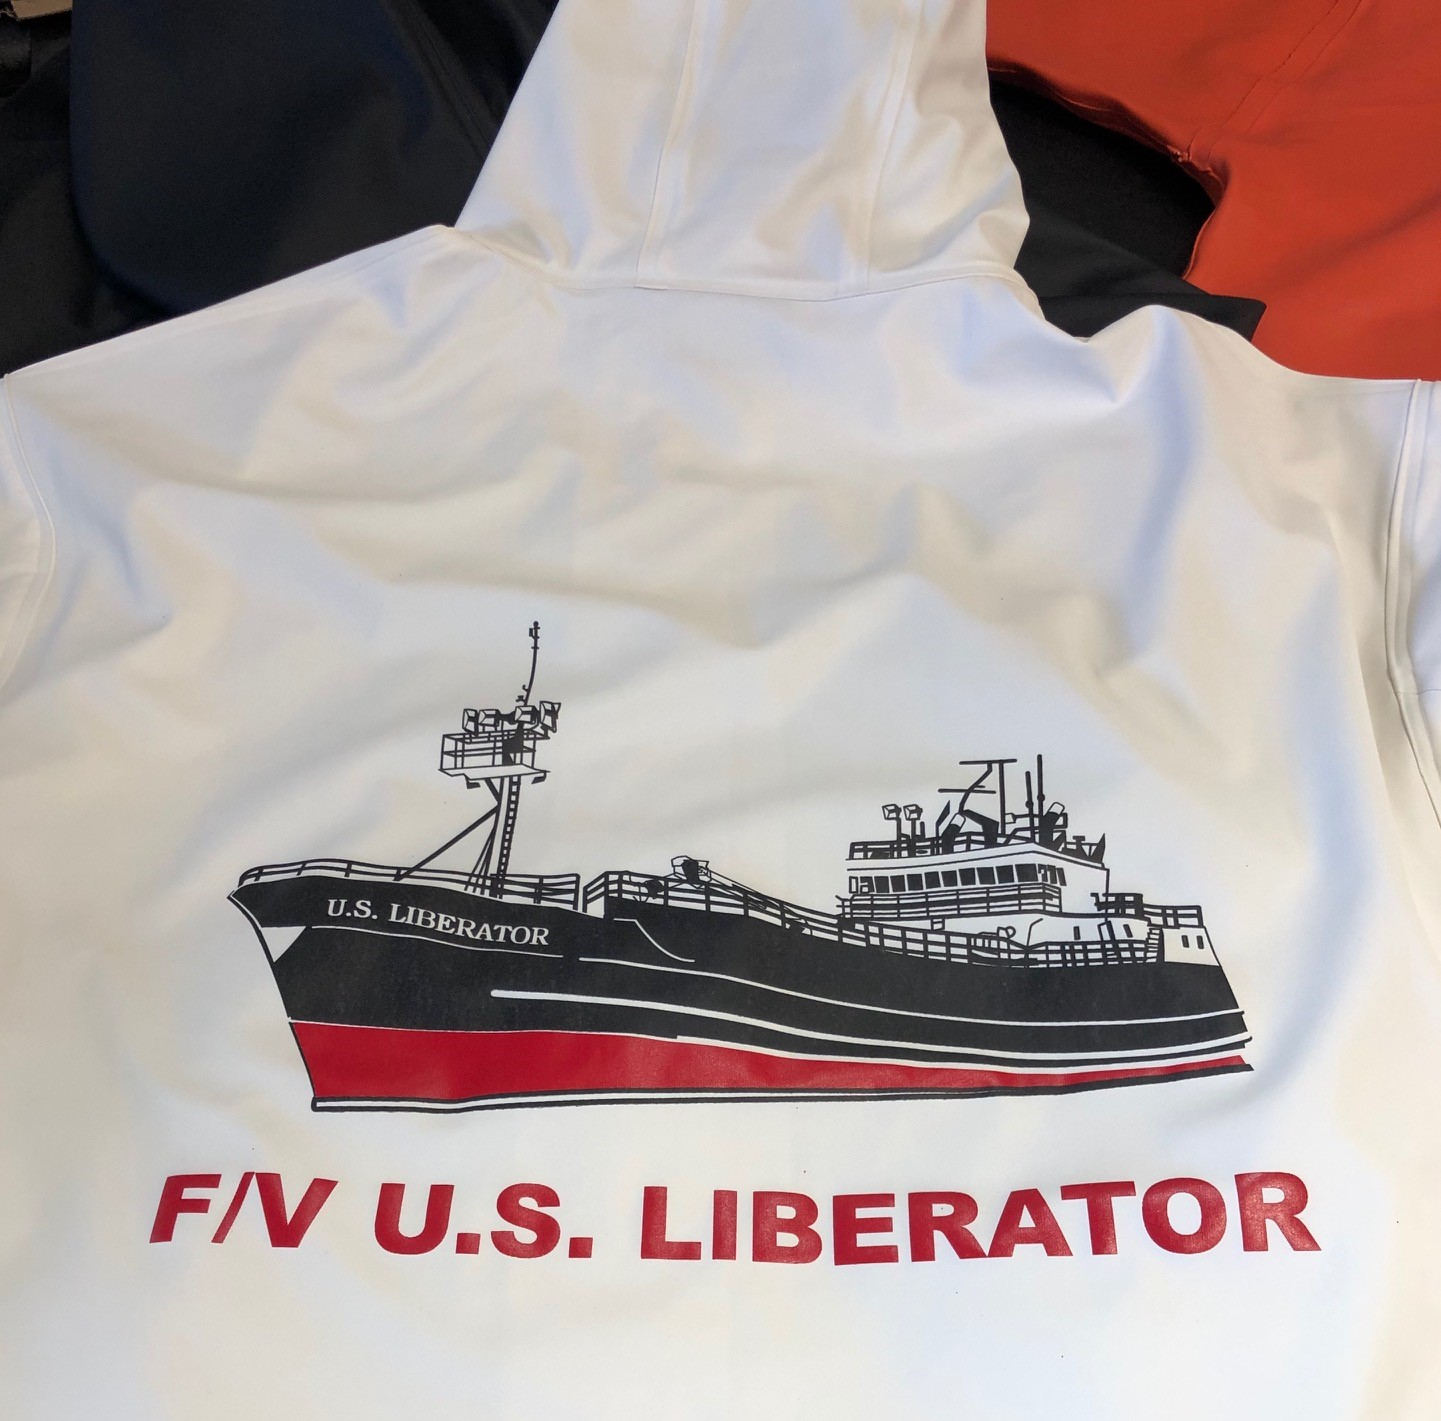 logounltd_laser_etching_embroidery_screen_printing_apparel_uniform_custom_tshirts_kirkland_bellevue_seattle_redmond_woodinville_branded_merchandise_promotional_products_logo_unltd_grundens_alaska_fishing (1).jpg